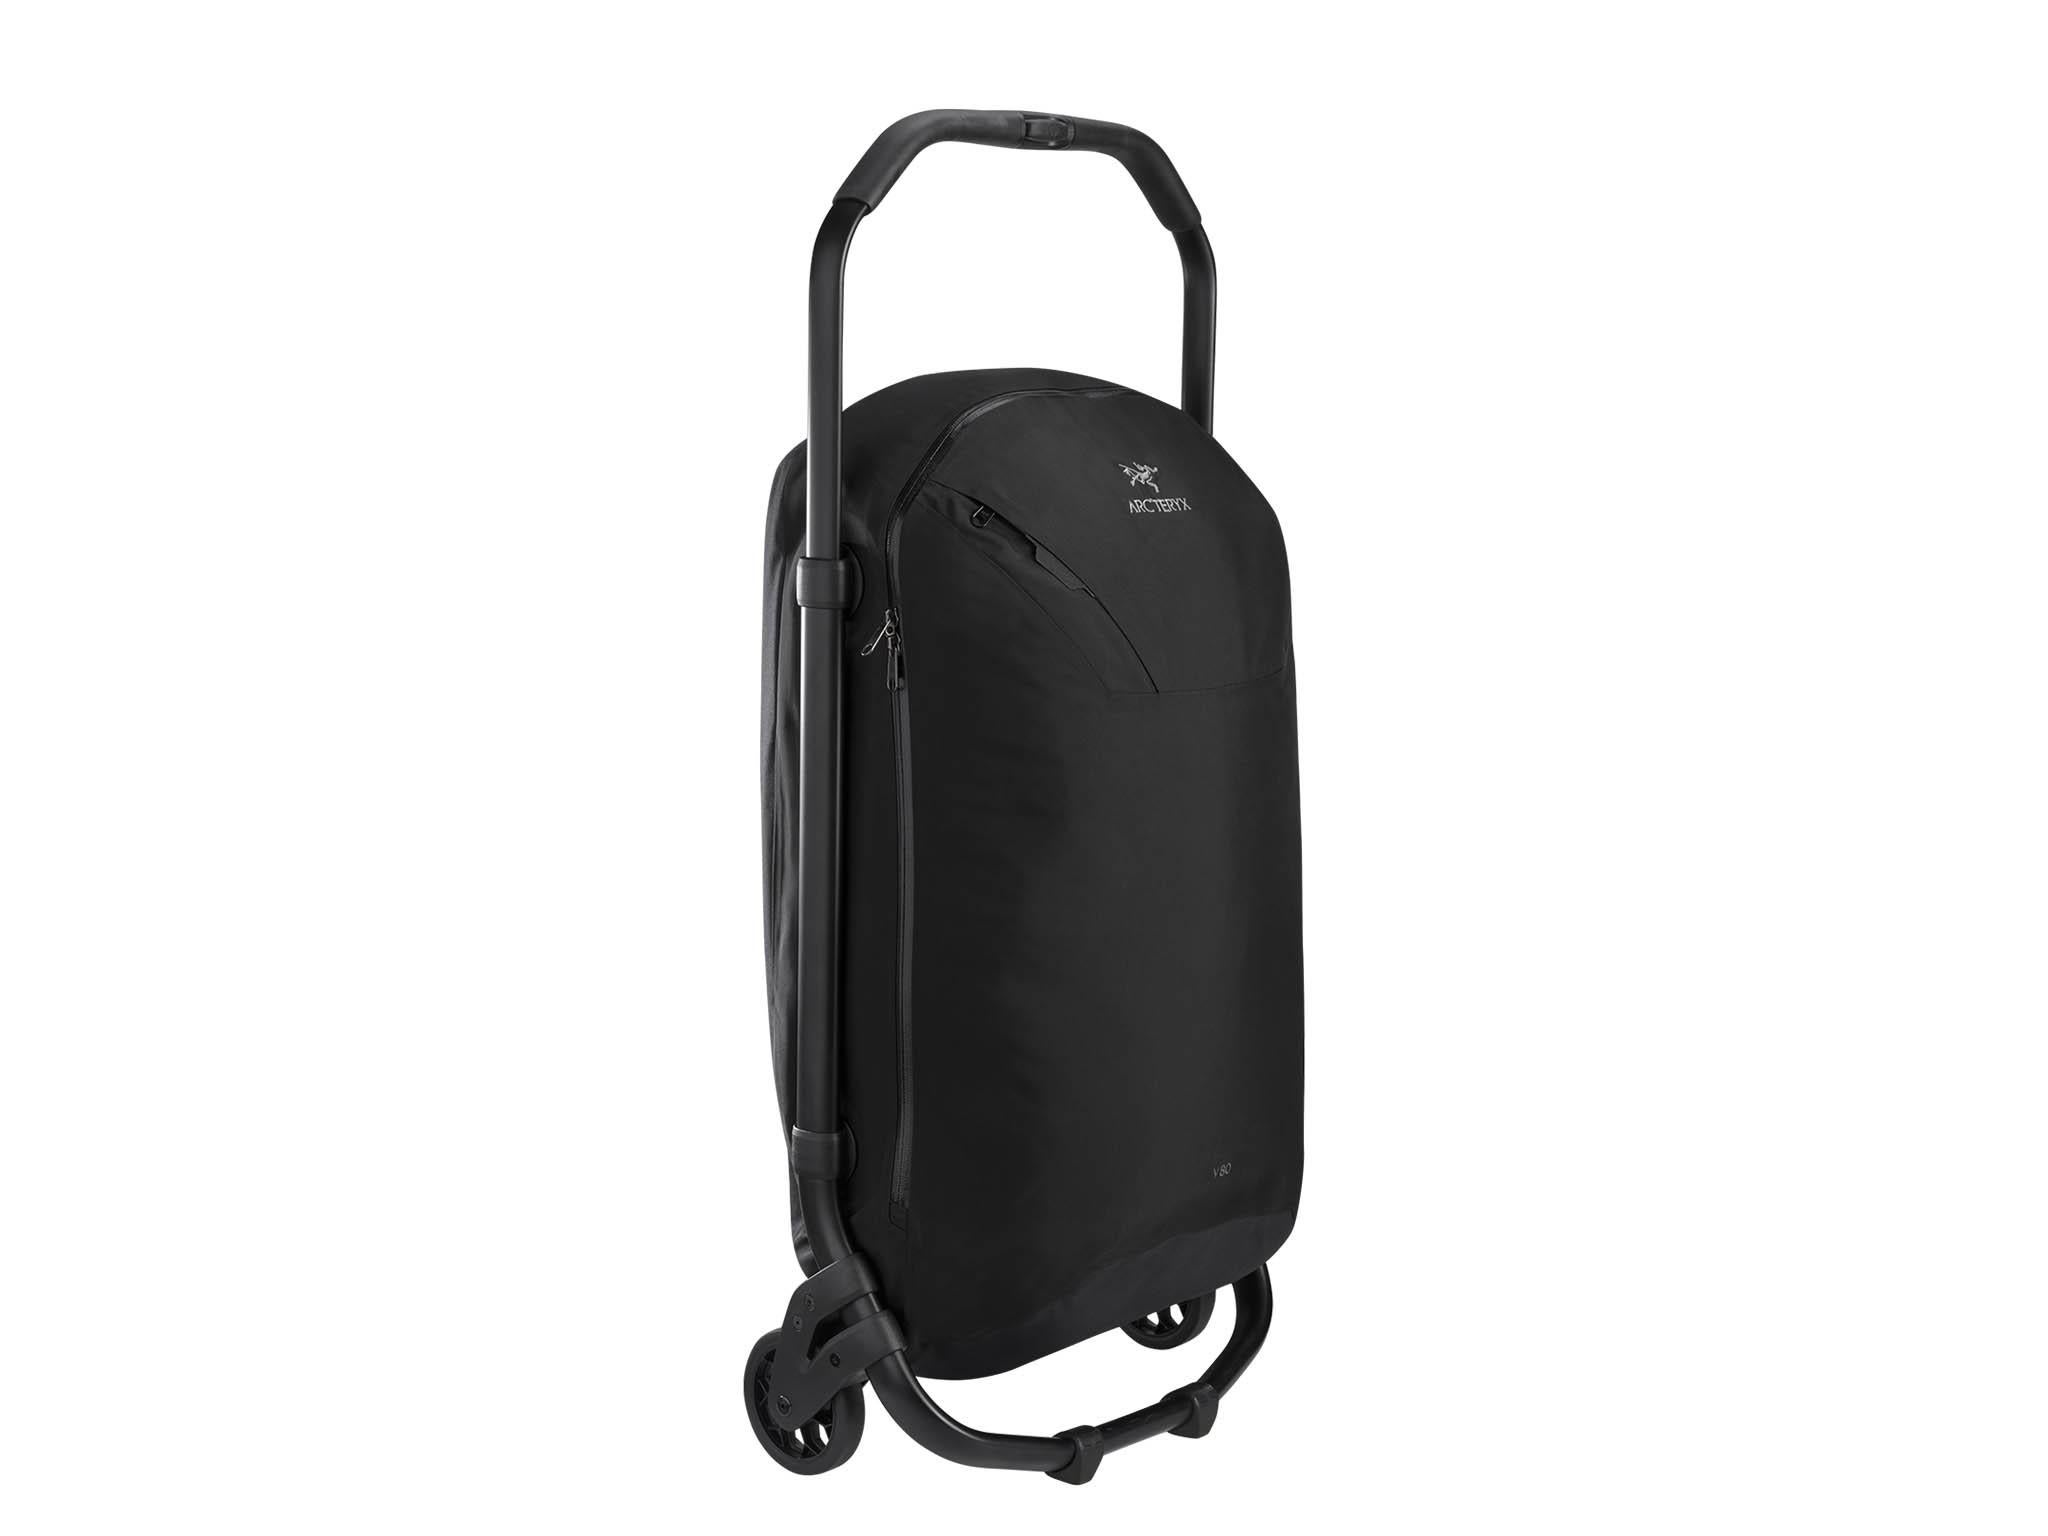 d60866064 Best wheeled travel bags that get you from A to B with ease